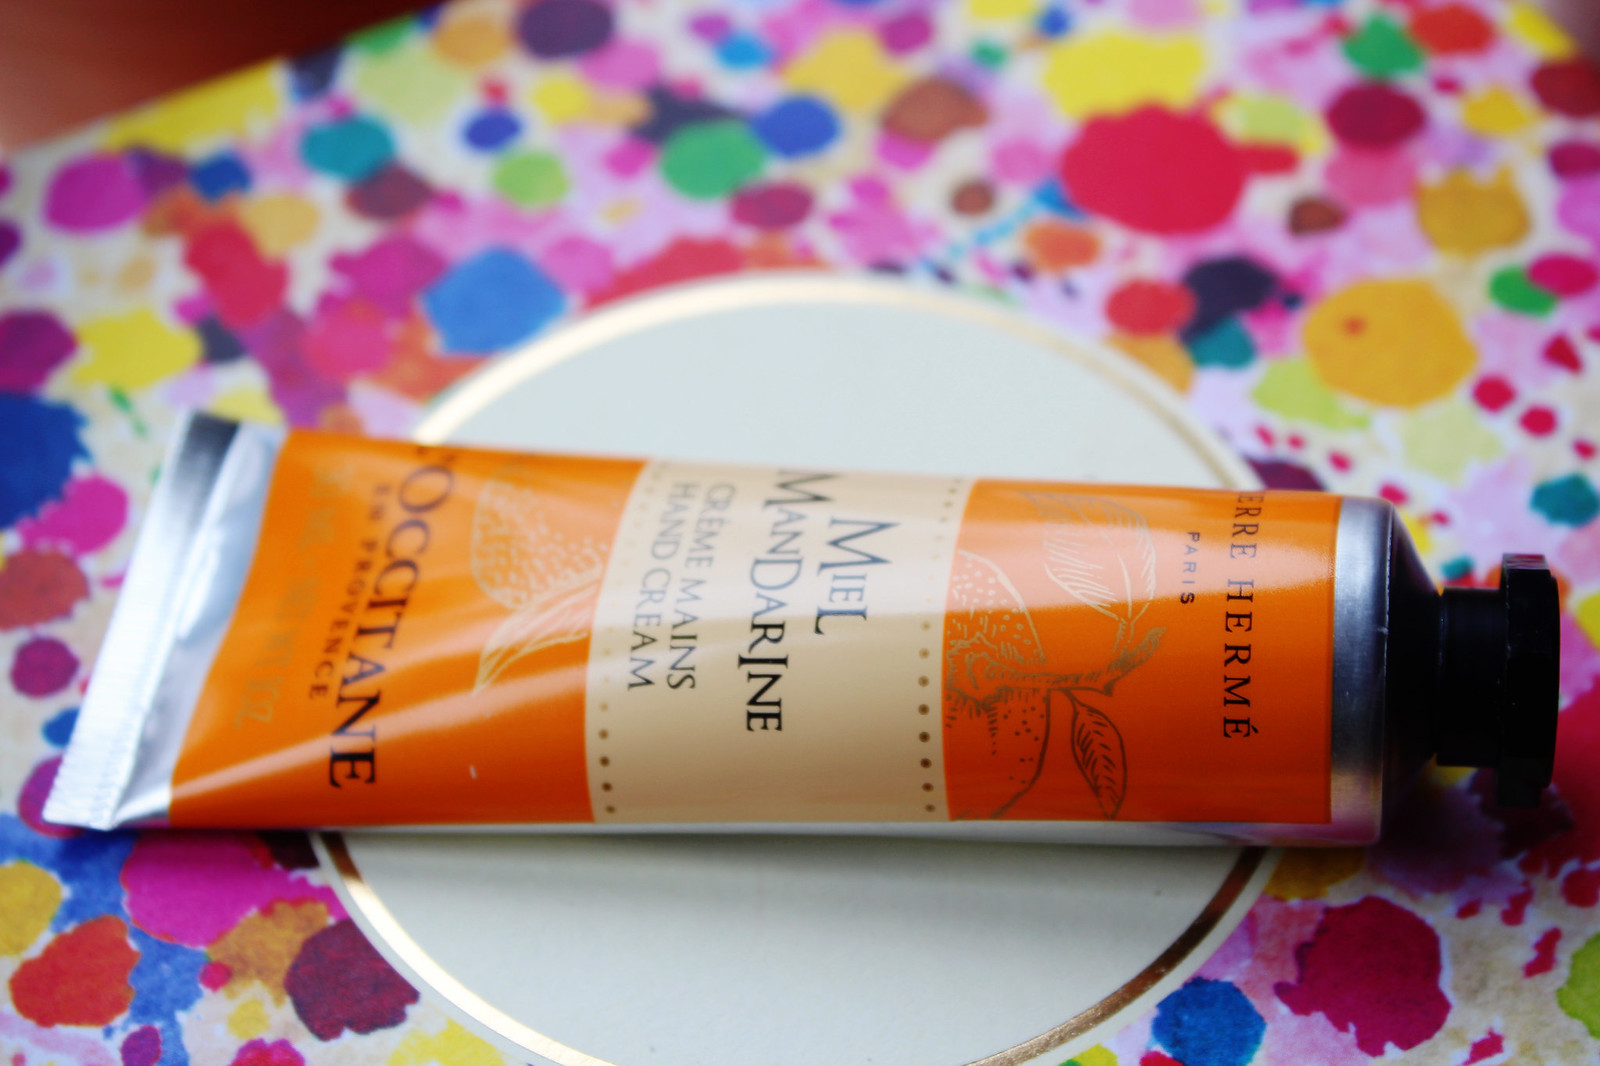 L'Ocitane hand cream with hiney and tangerines